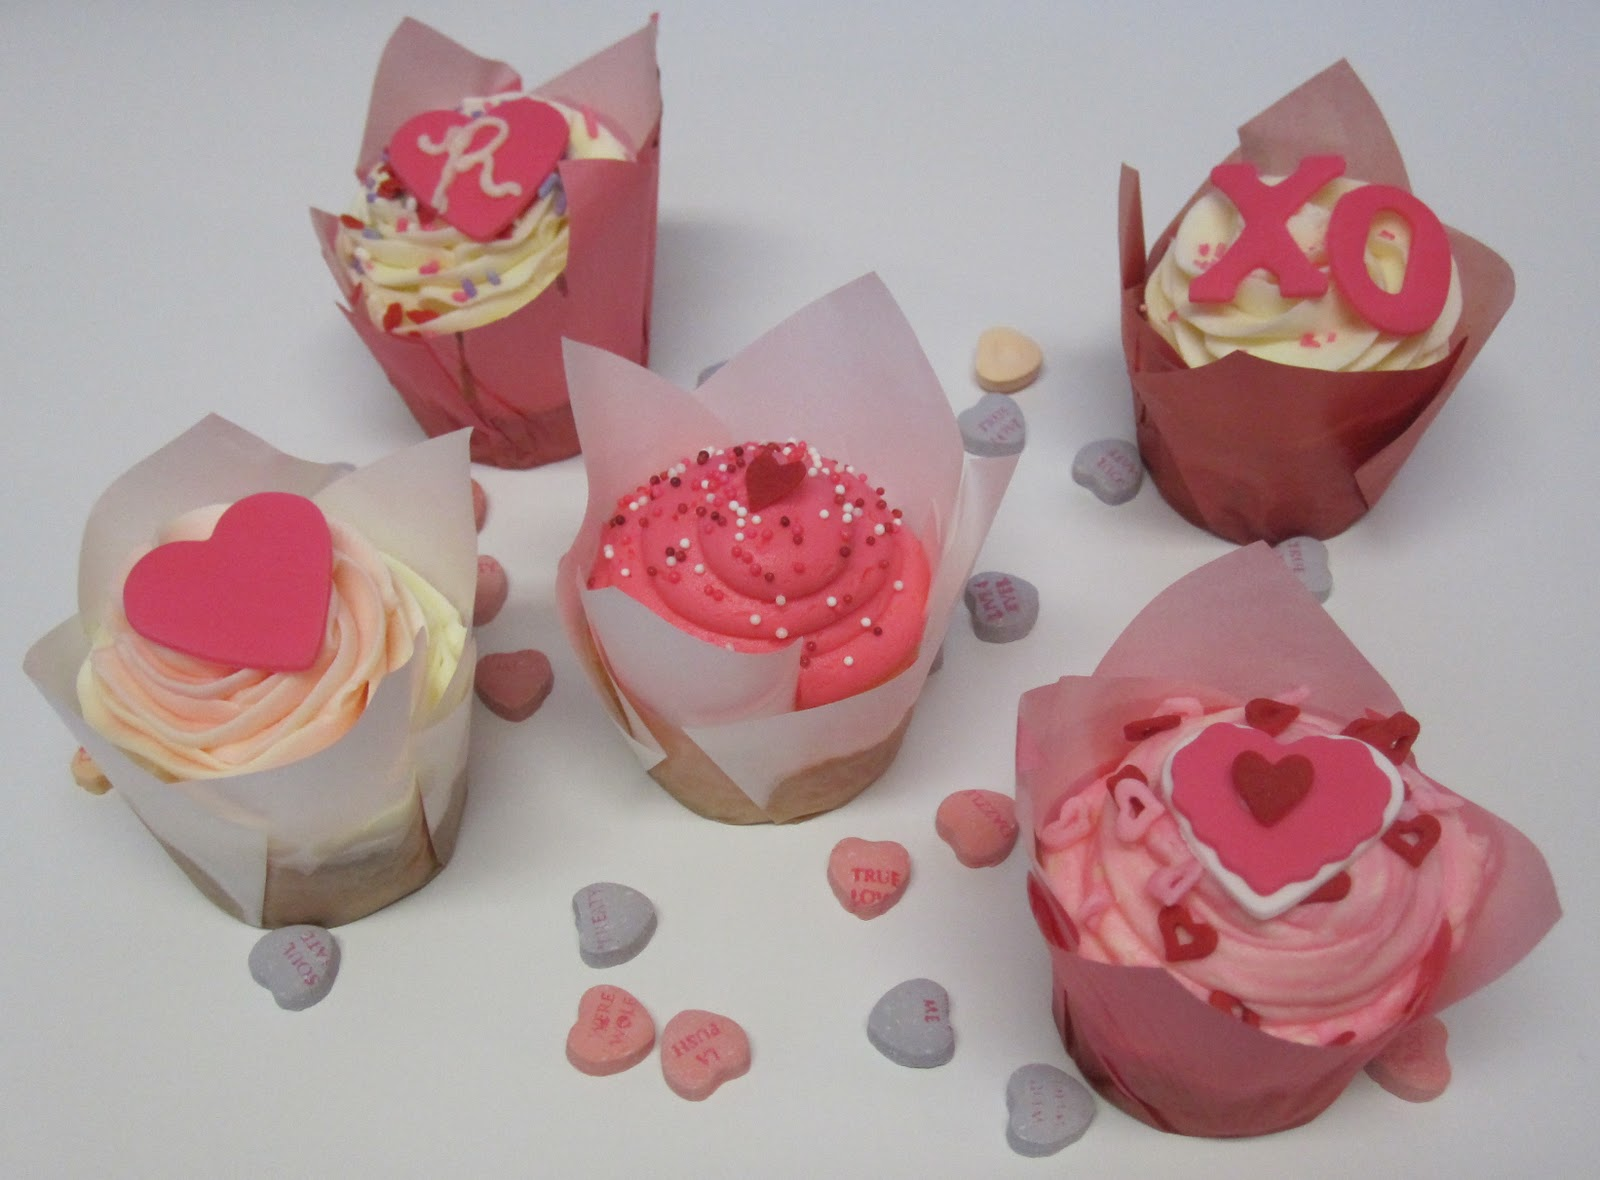 LovelyGirls Weddings + Events: Marry Me Cupcakes... We Do